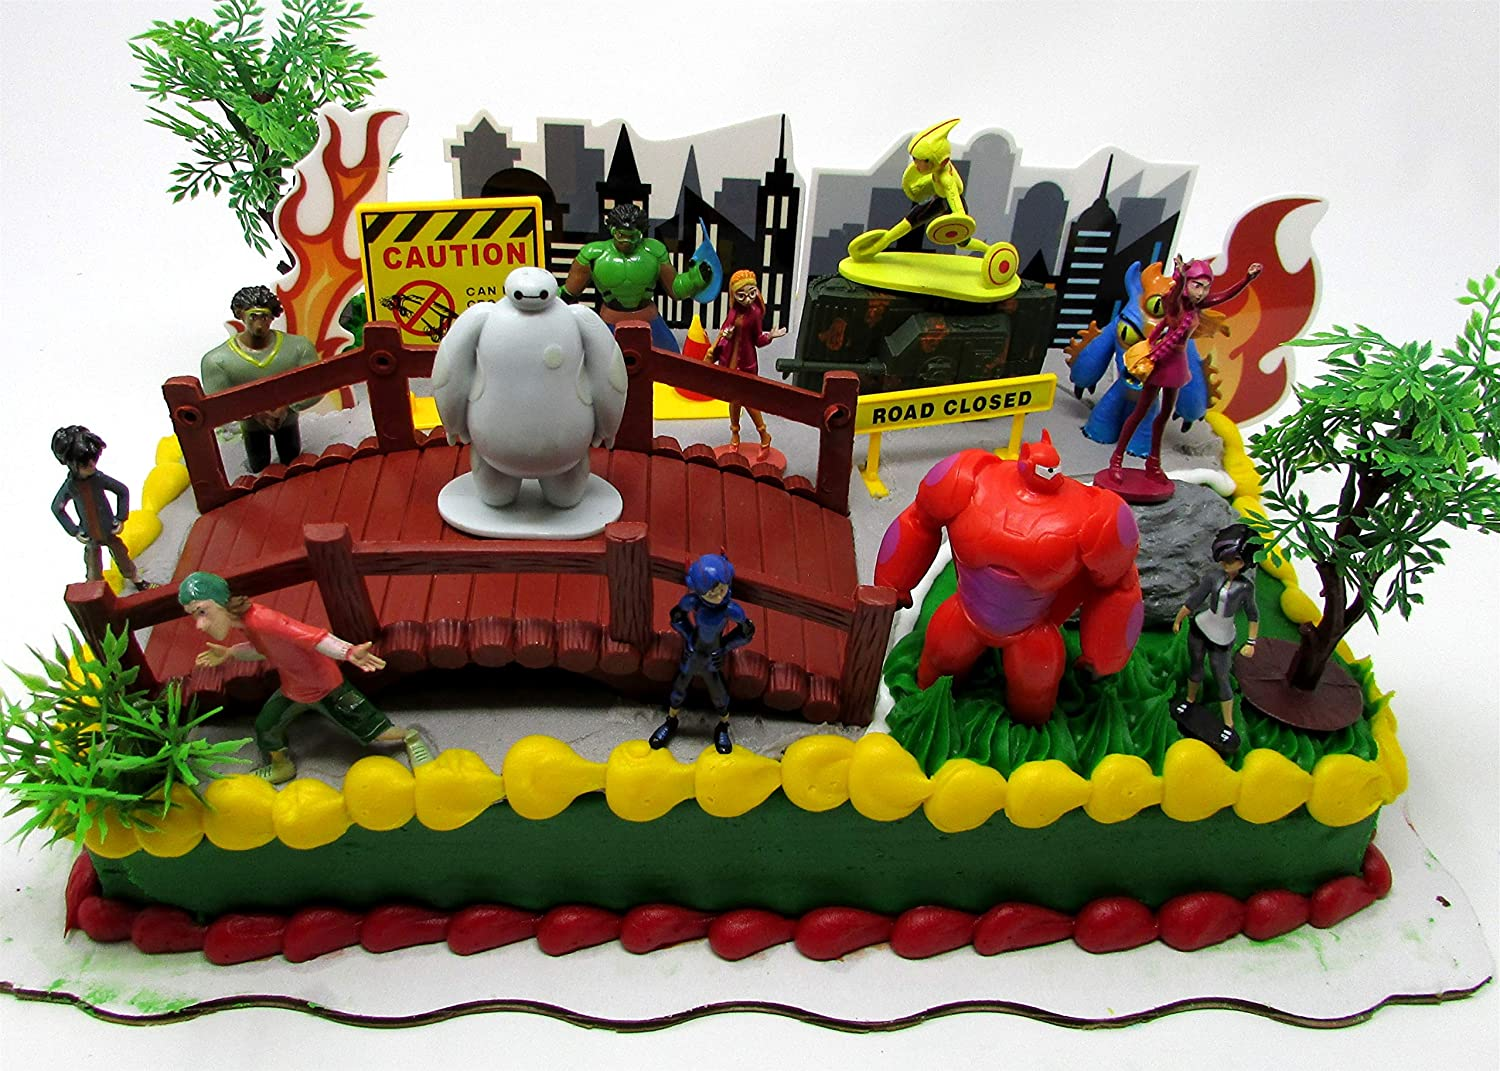 Big Hero 6 Birthday Cake Topper 26 Piece Set Featuring Hiro Hamada Baymax Go Tomago Honey Lemon Wasabi And Fred Super Characters